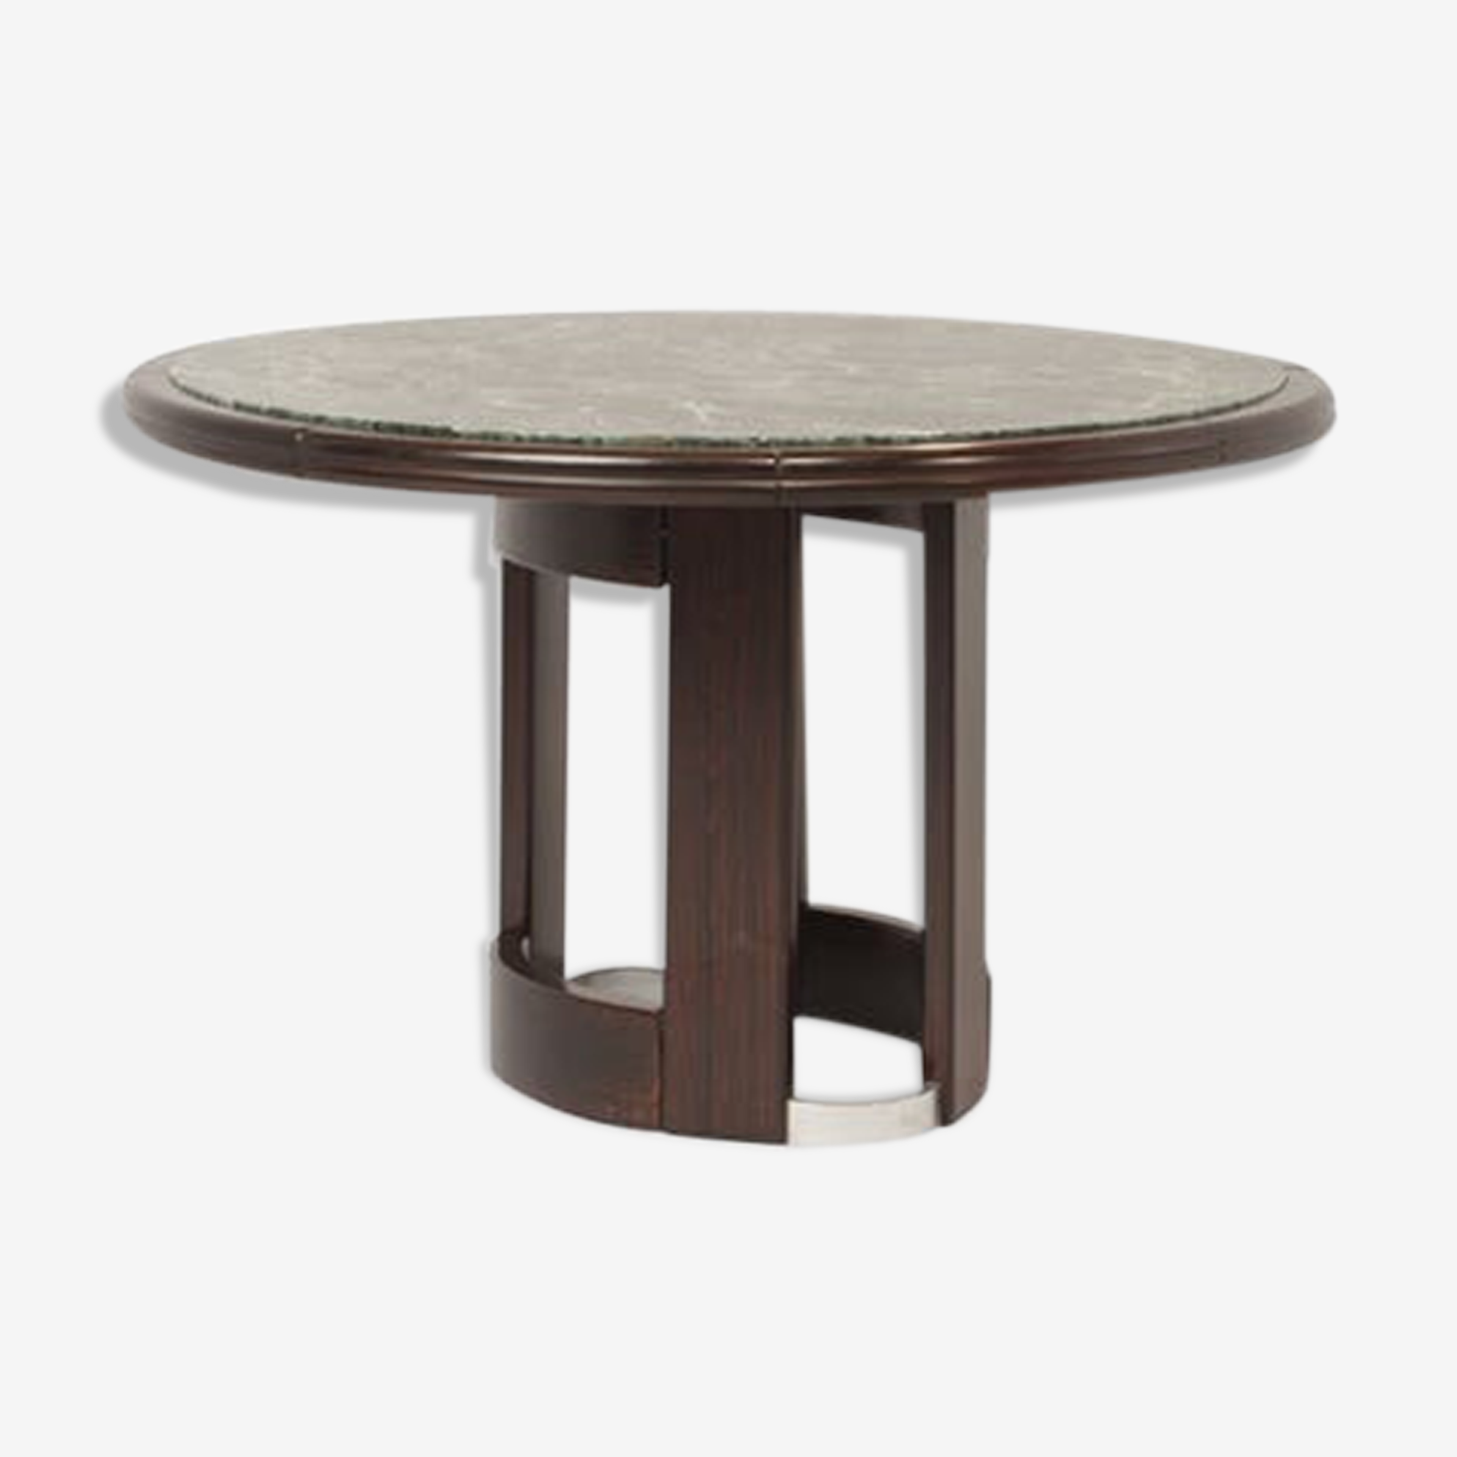 Dining table 60/70